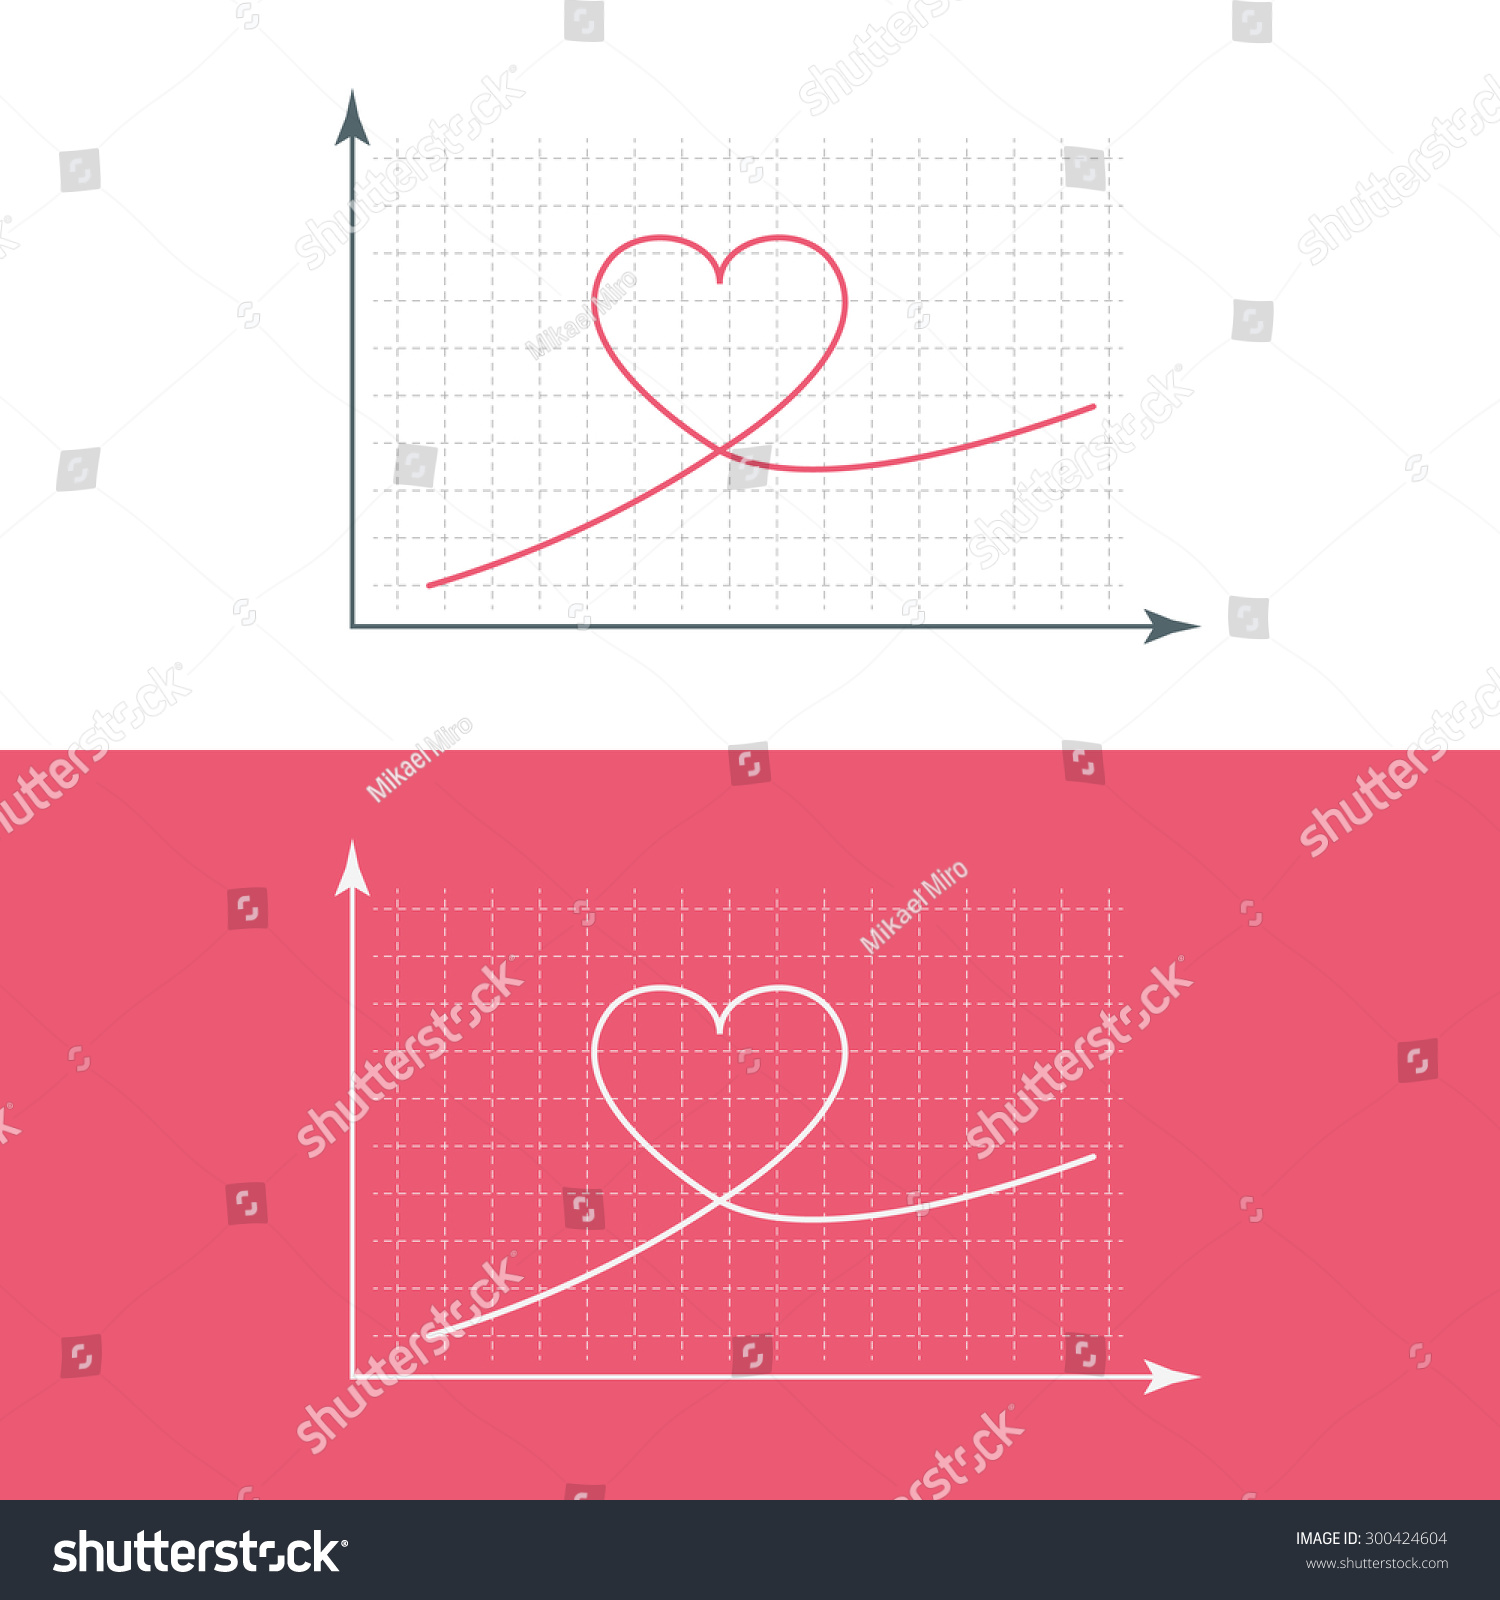 Illustration graphic chart heart icon loving stock illustration illustration graphic chart heart icon loving stock illustration 300424604 shutterstock ccuart Gallery